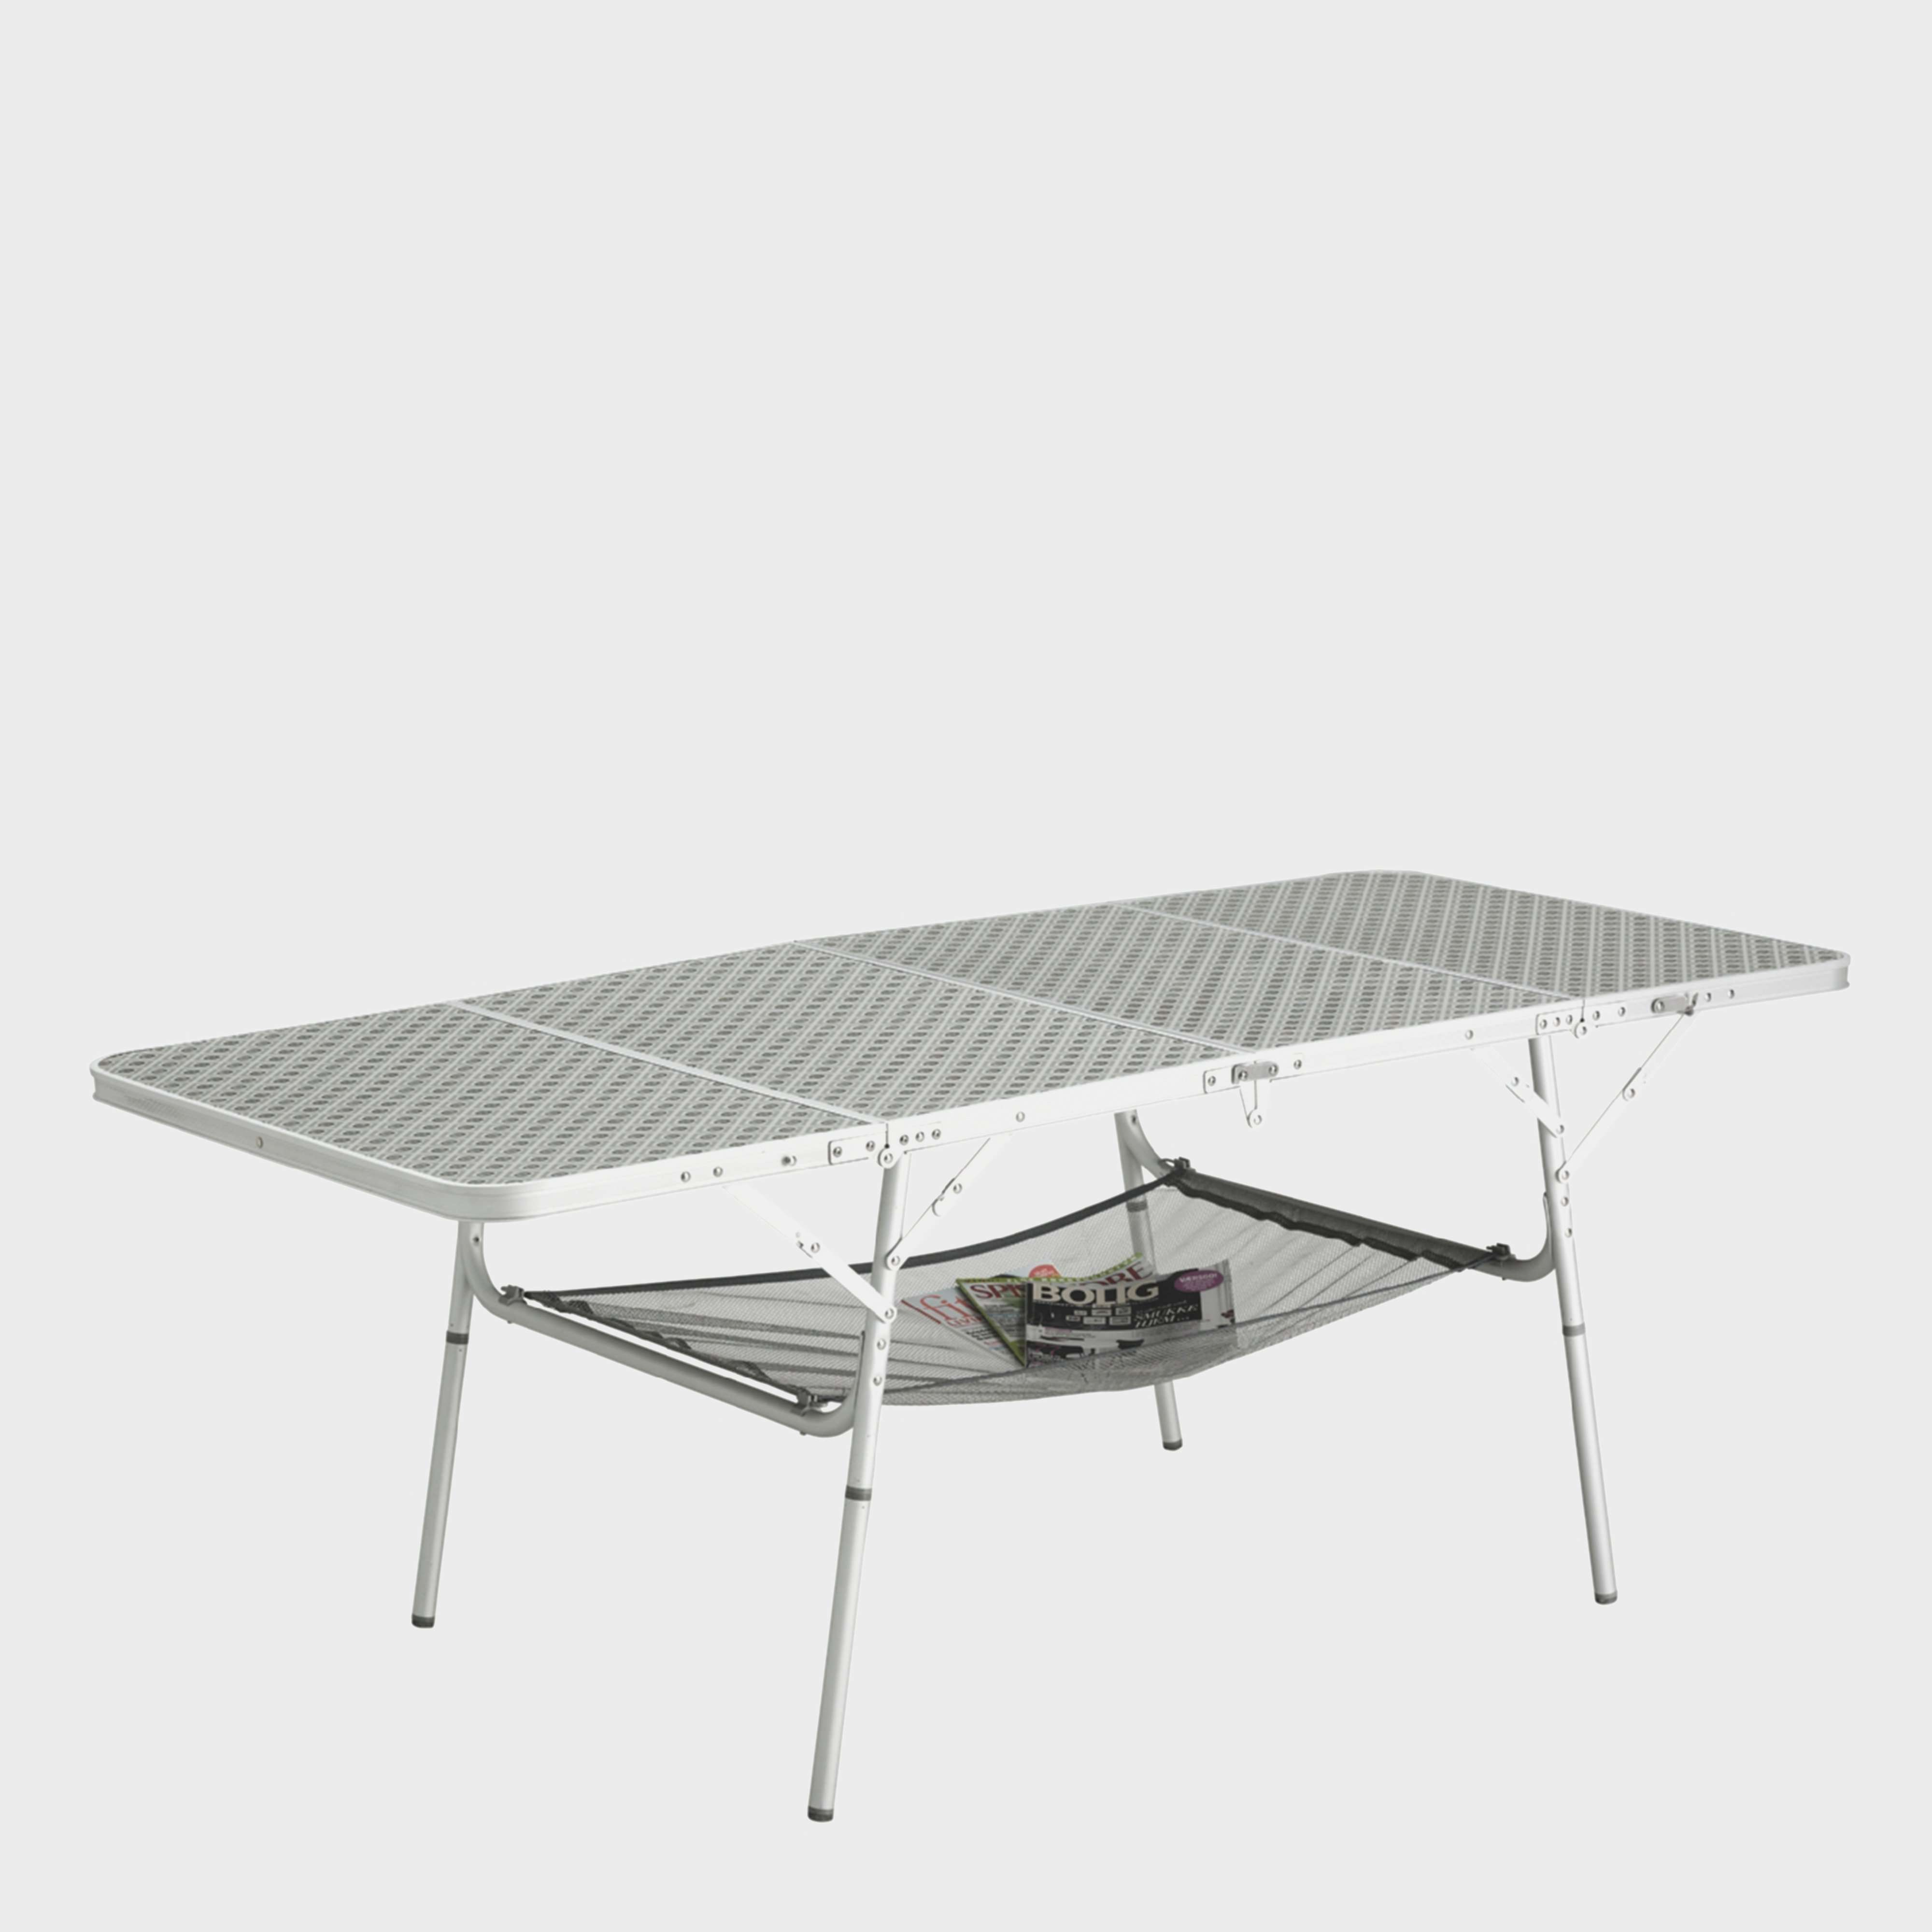 OUTWELL Toronto Table - Large